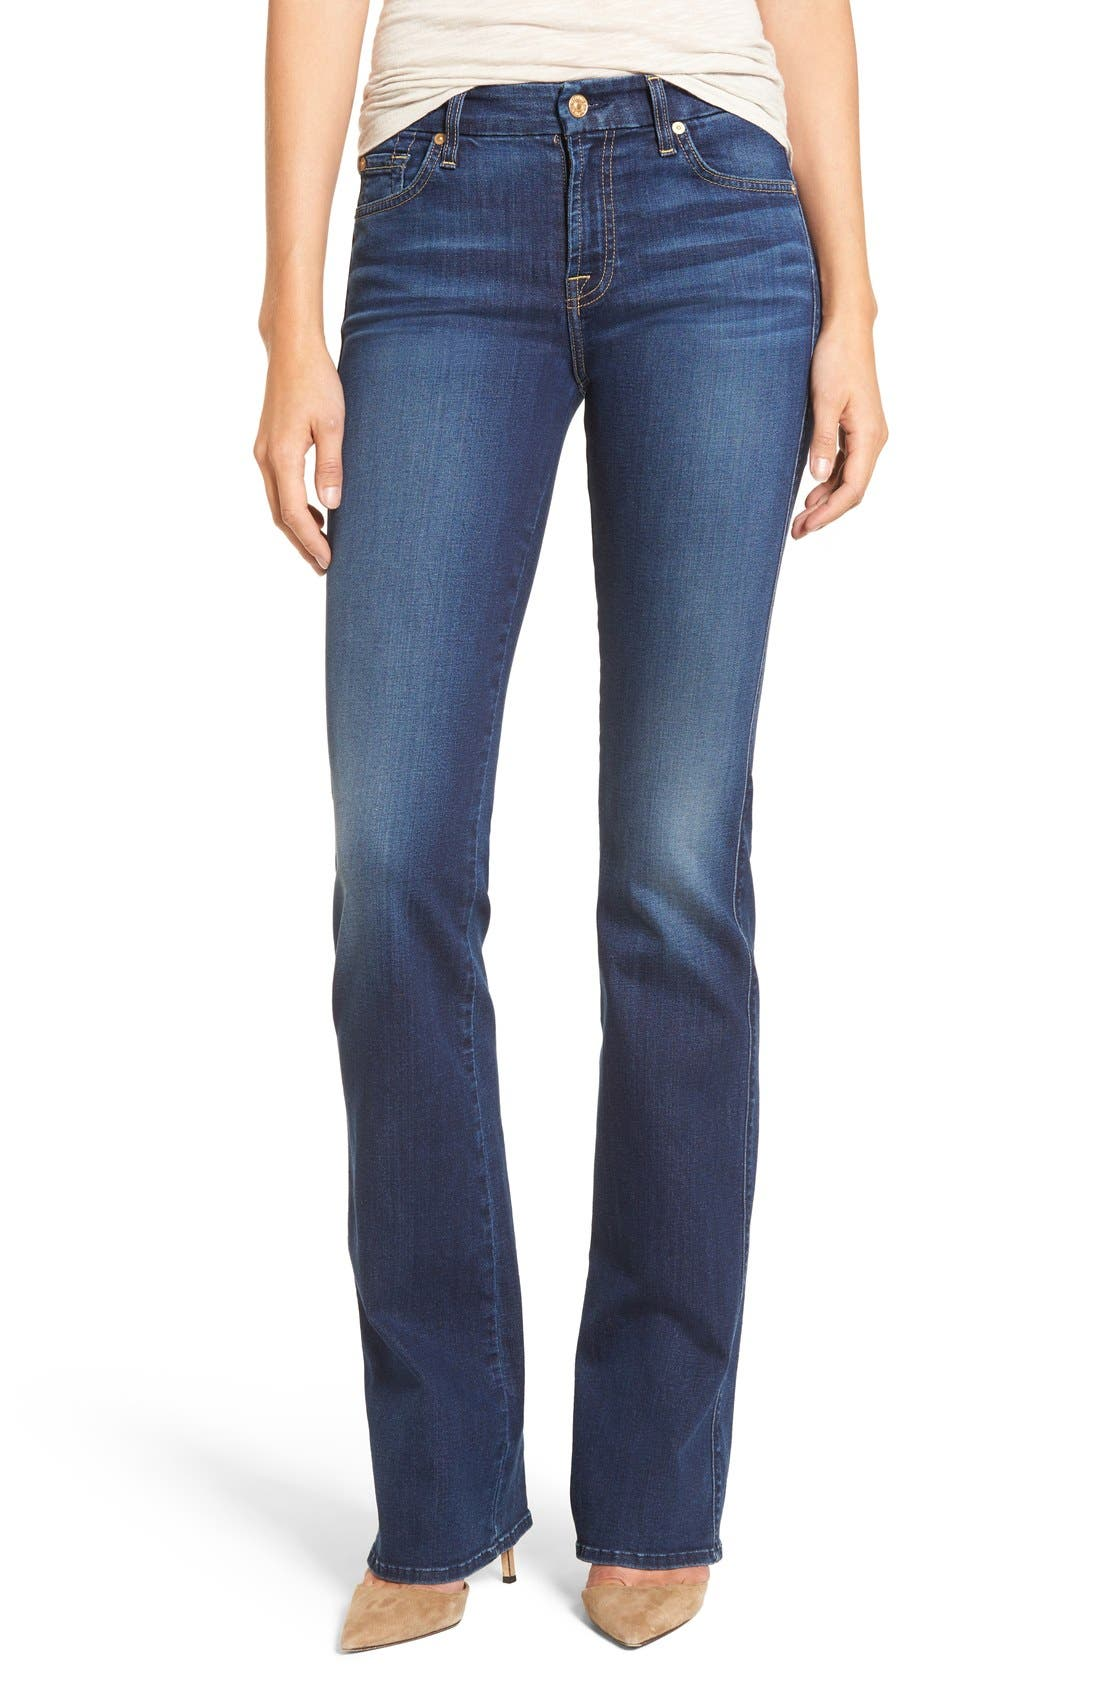 b(air) - Kimmie Bootcut Jeans,                             Main thumbnail 1, color,